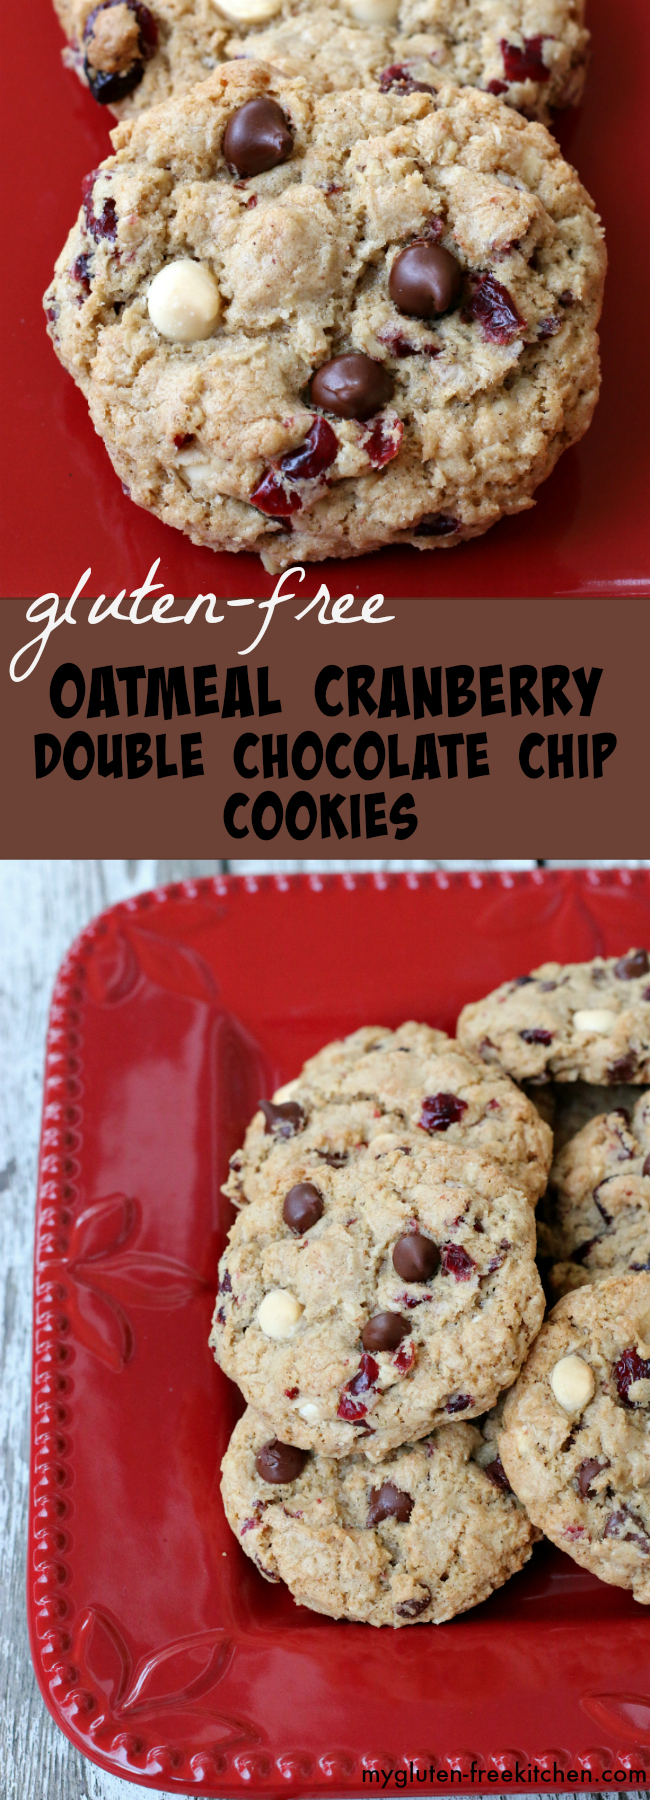 Gluten-free Oatmeal Cranberry Double Chocolate Chip Cookies recipe